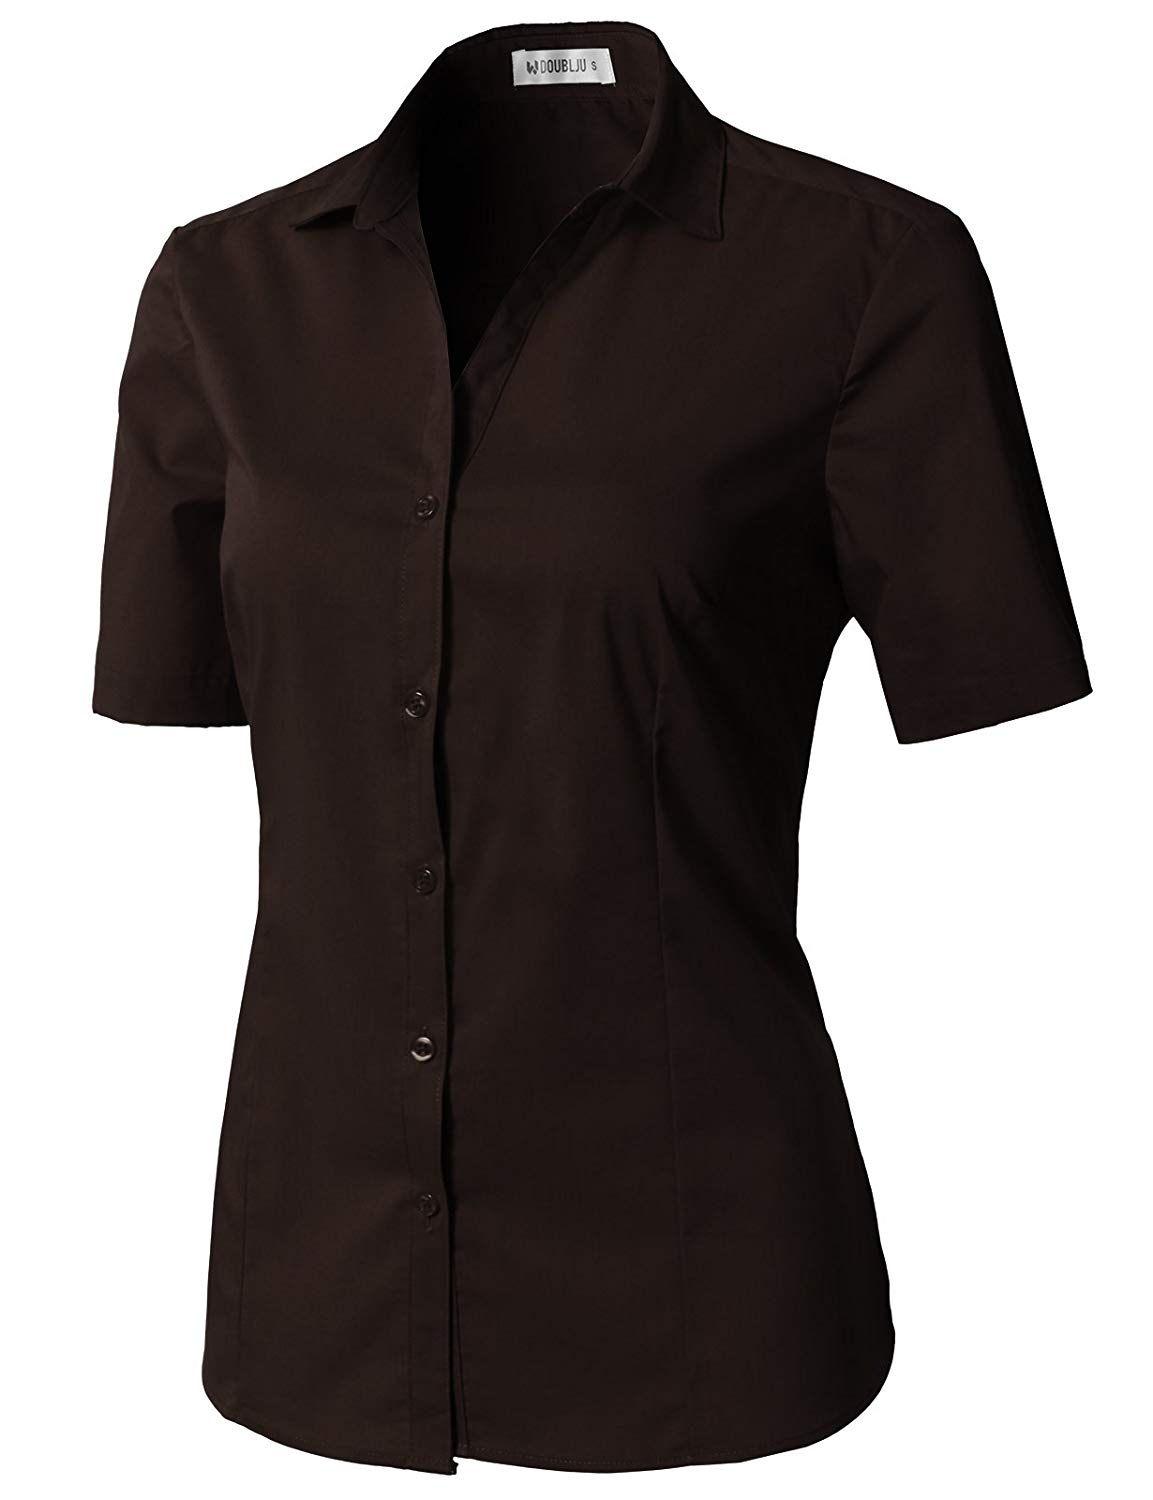 6f3b2ea47 Get Quotations · CLOVERY Women's Short Sleeve Basic Button Down Slim Fit  Fomal Shirt